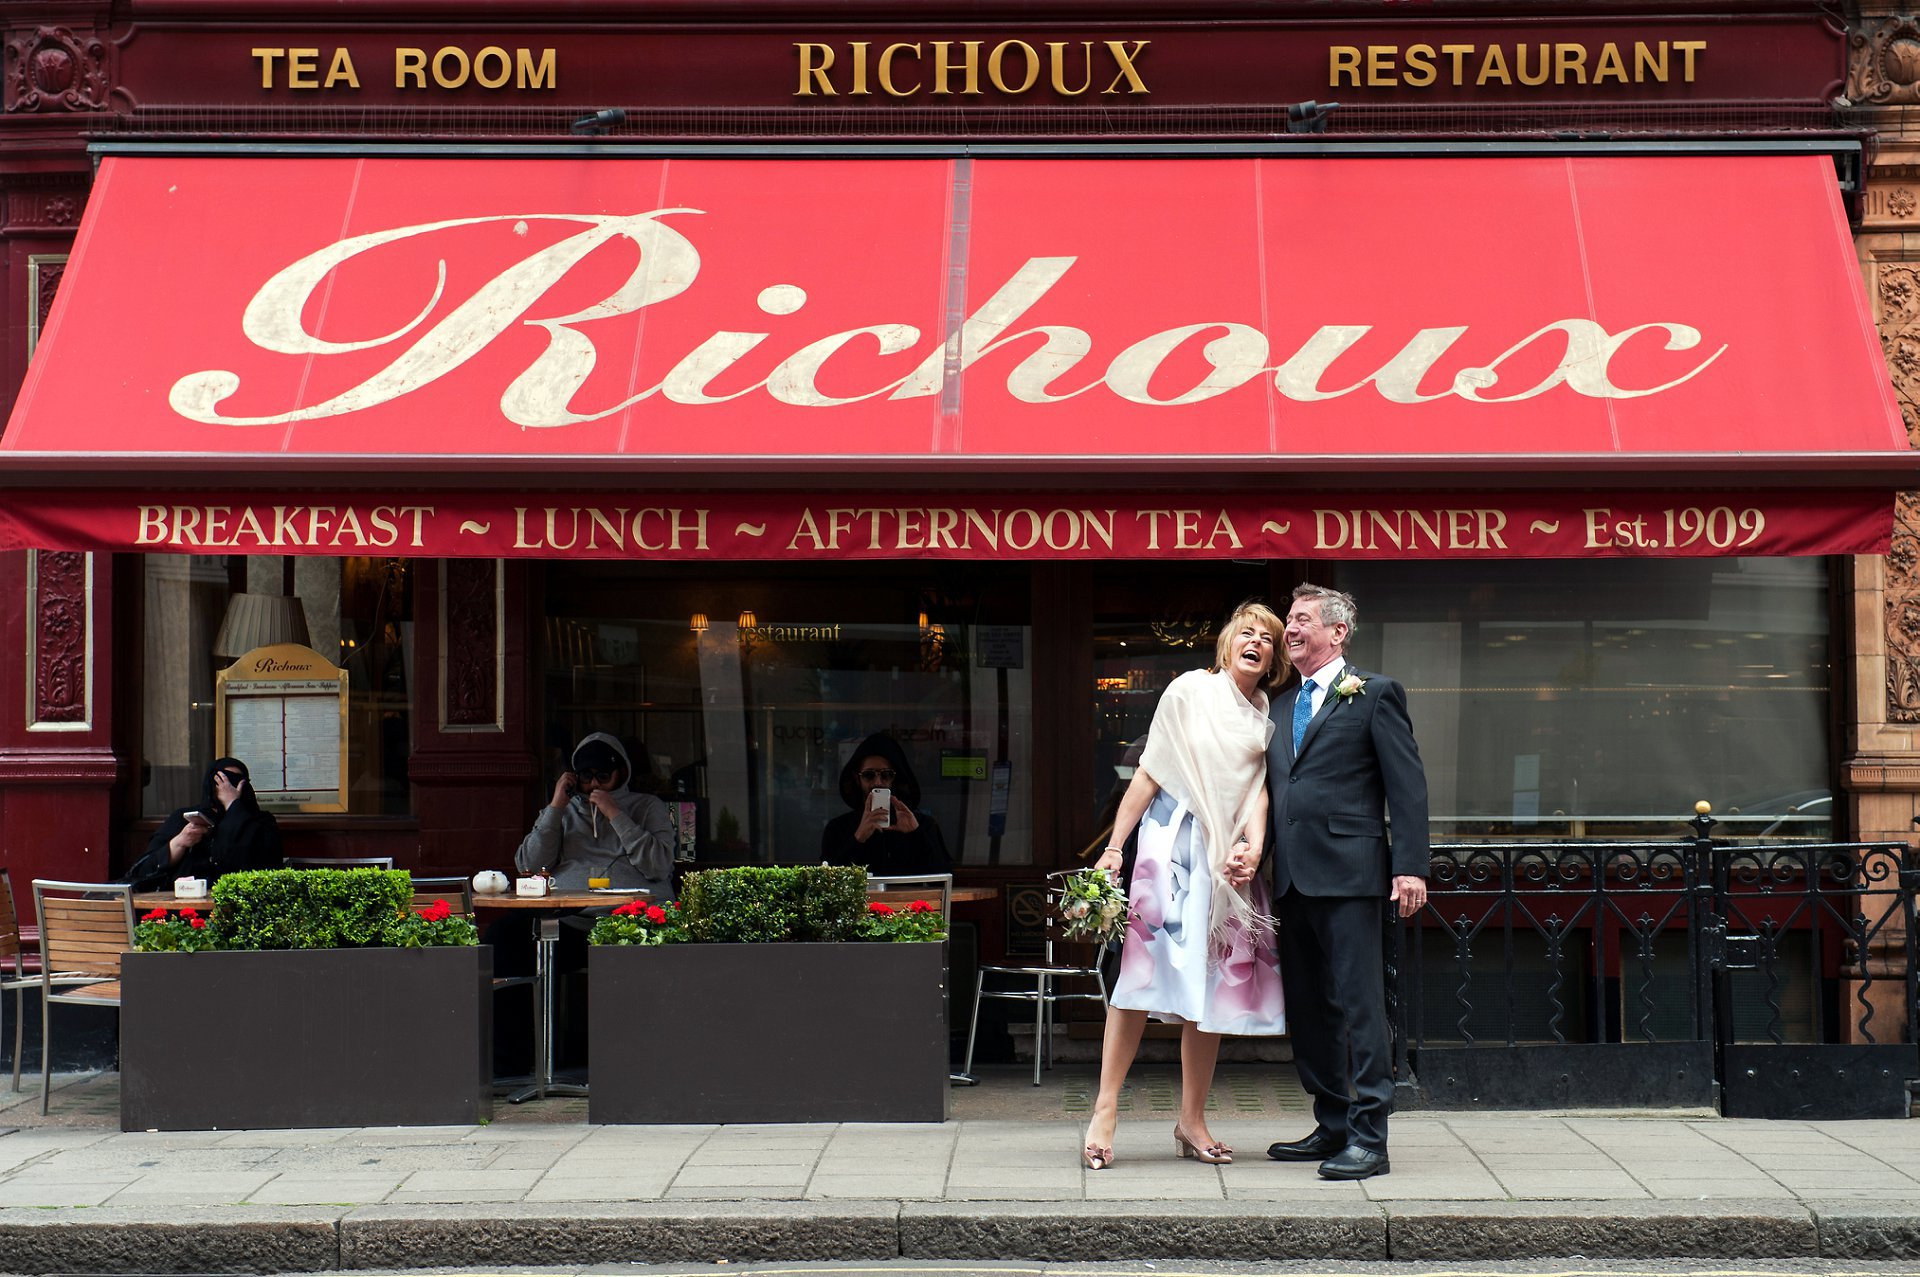 Richoux Wedding Reception - bride & groom outside their wedding reception venue, Richoux in London's Mayfair